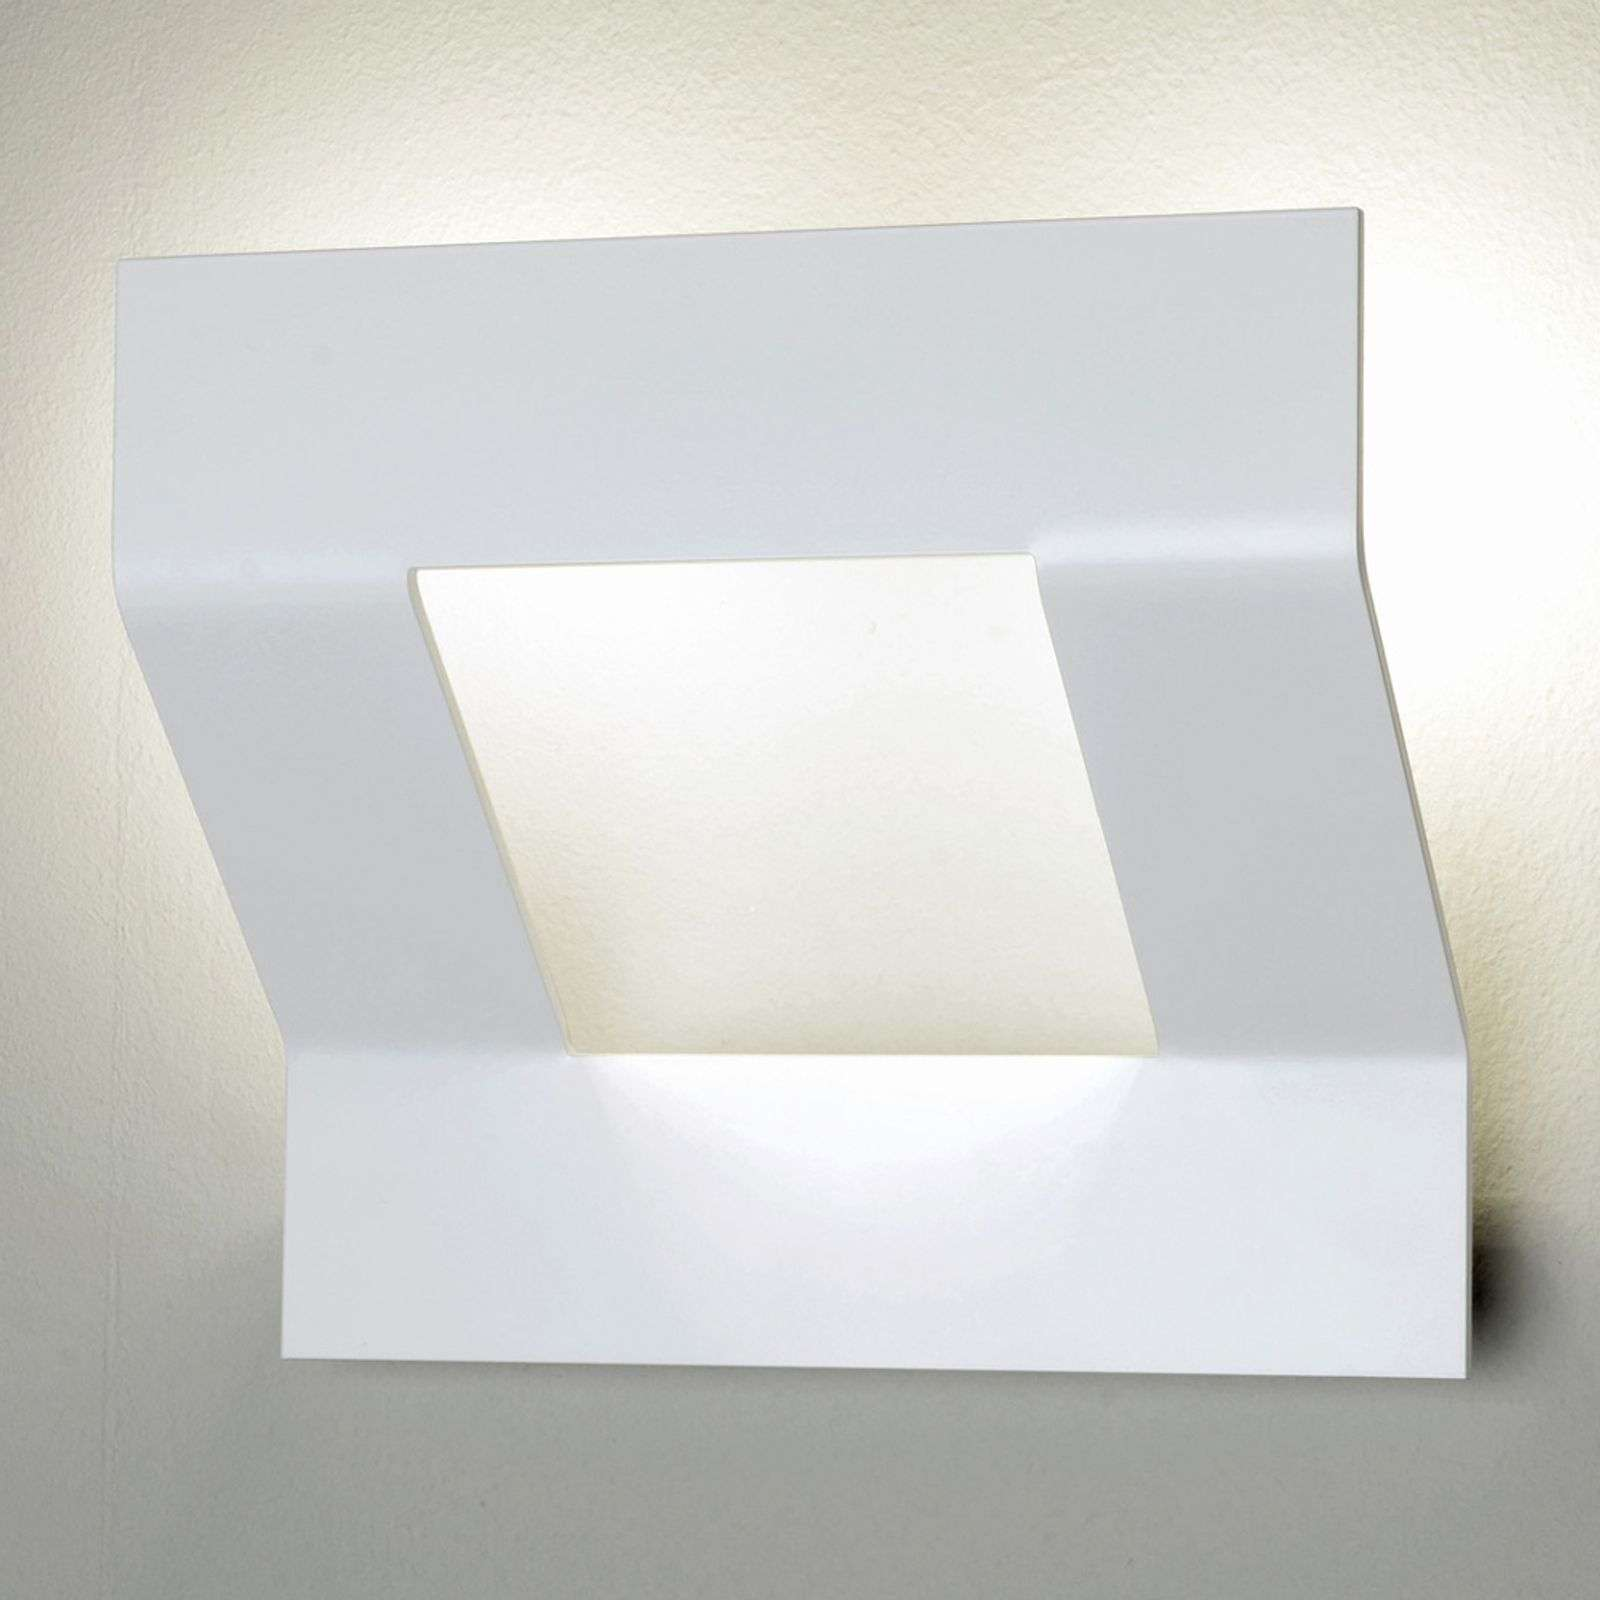 Applique LED Whizz, au design soigné